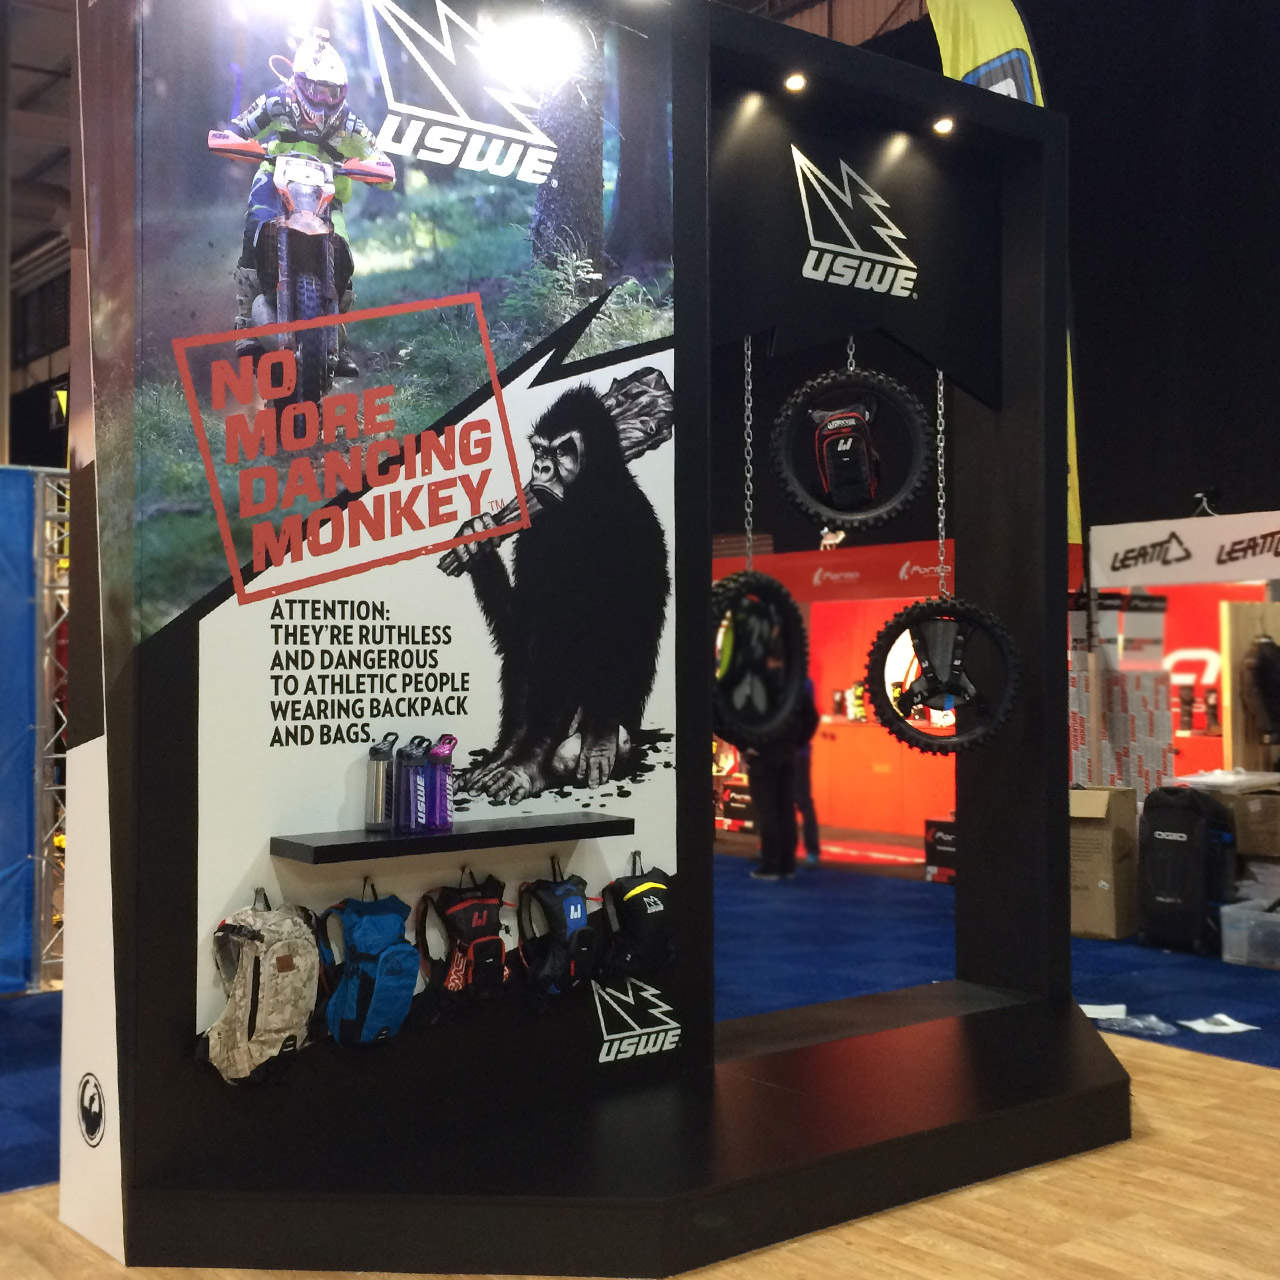 Dirt Bike Show UK - Uswe Stand